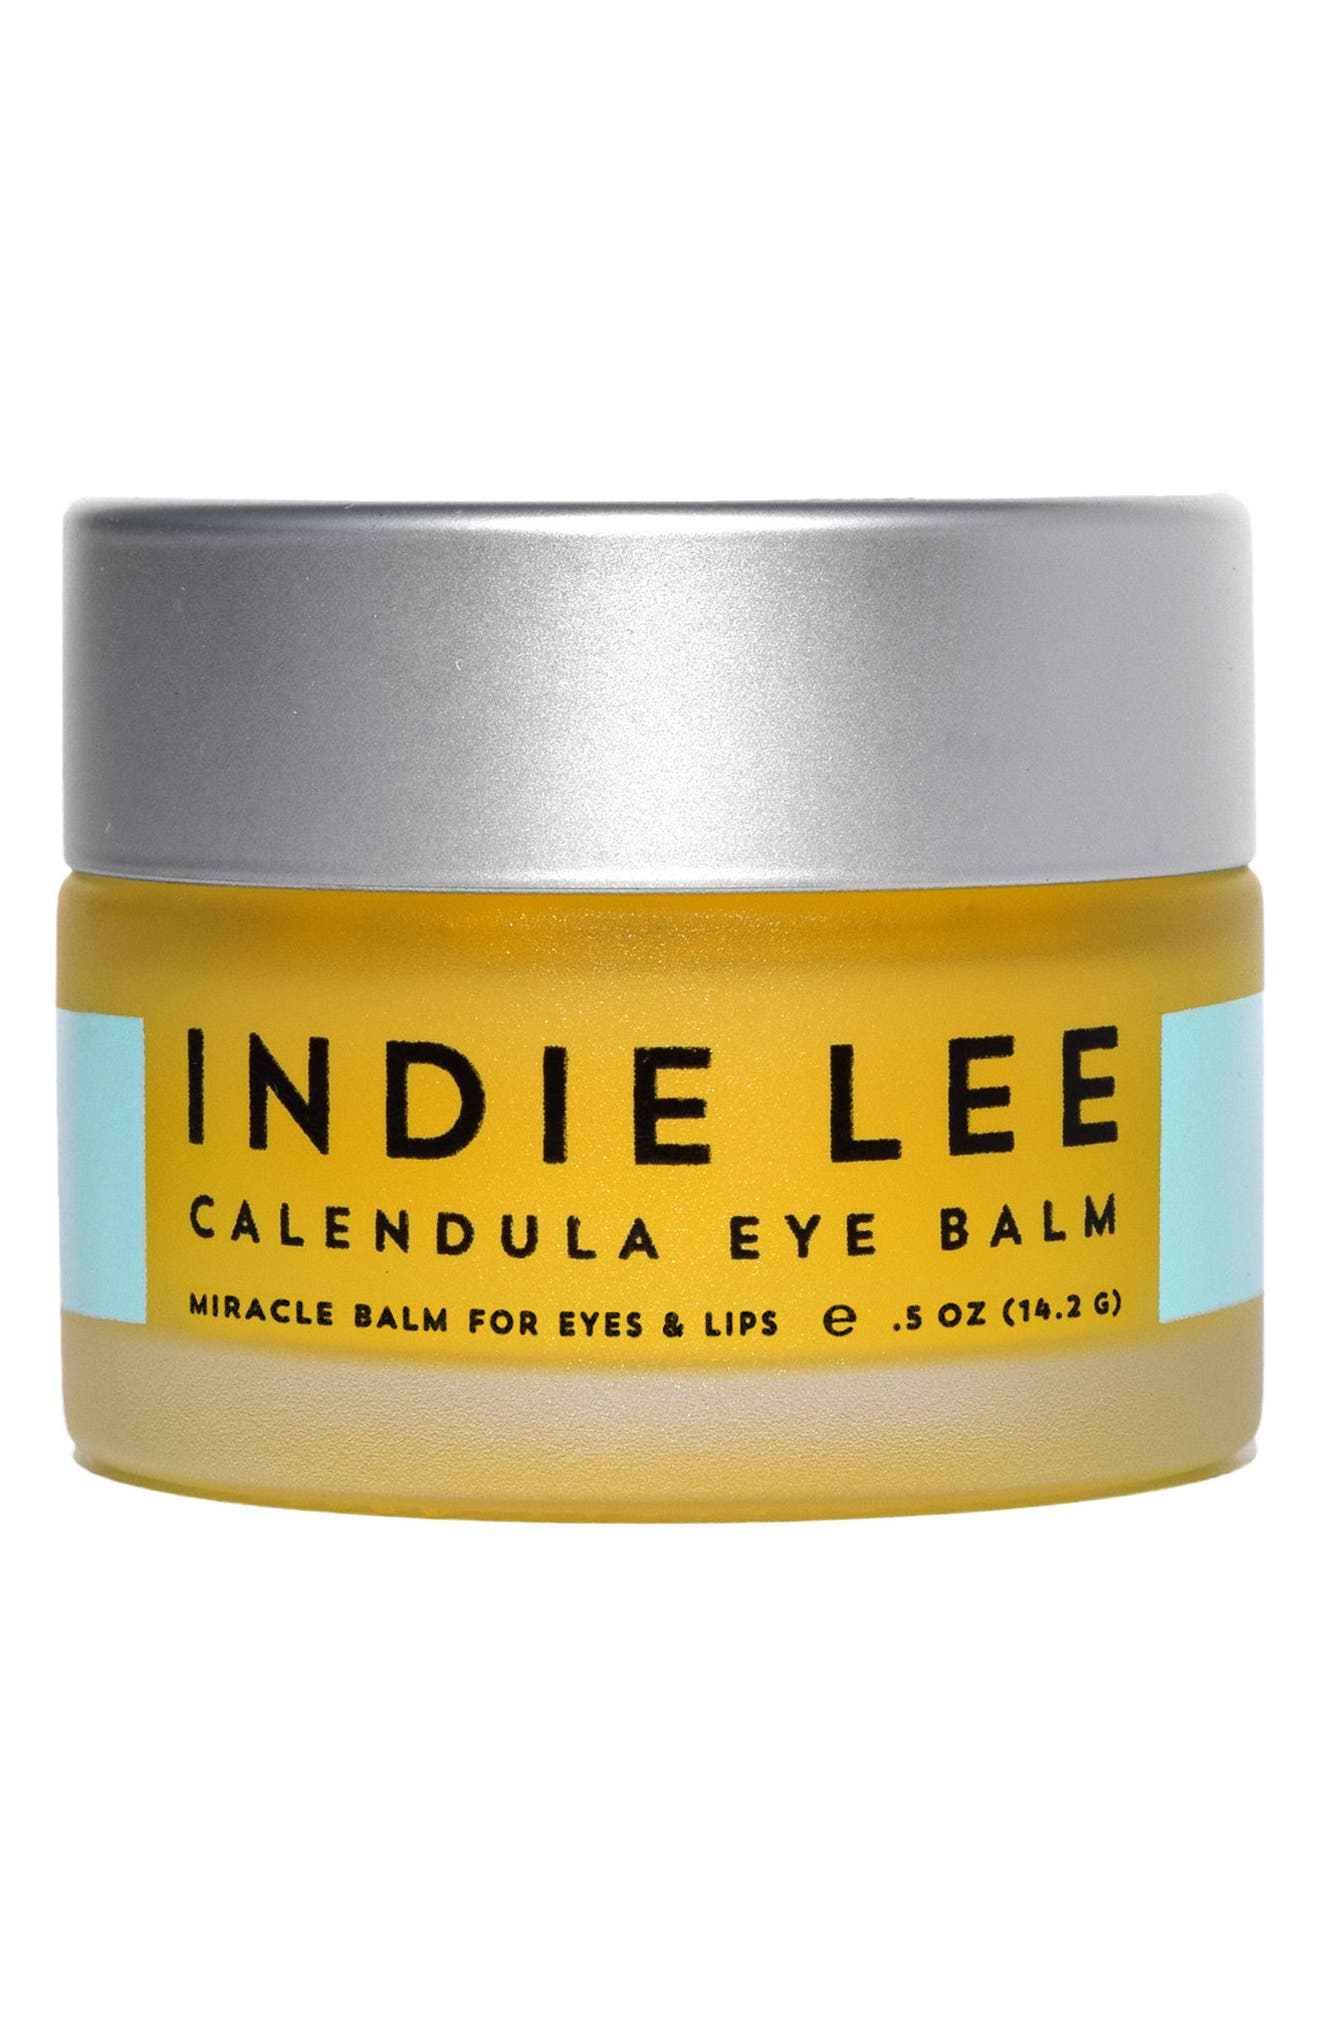 Alternate Image 1 Selected - Indie Lee Calendula Eye Balm